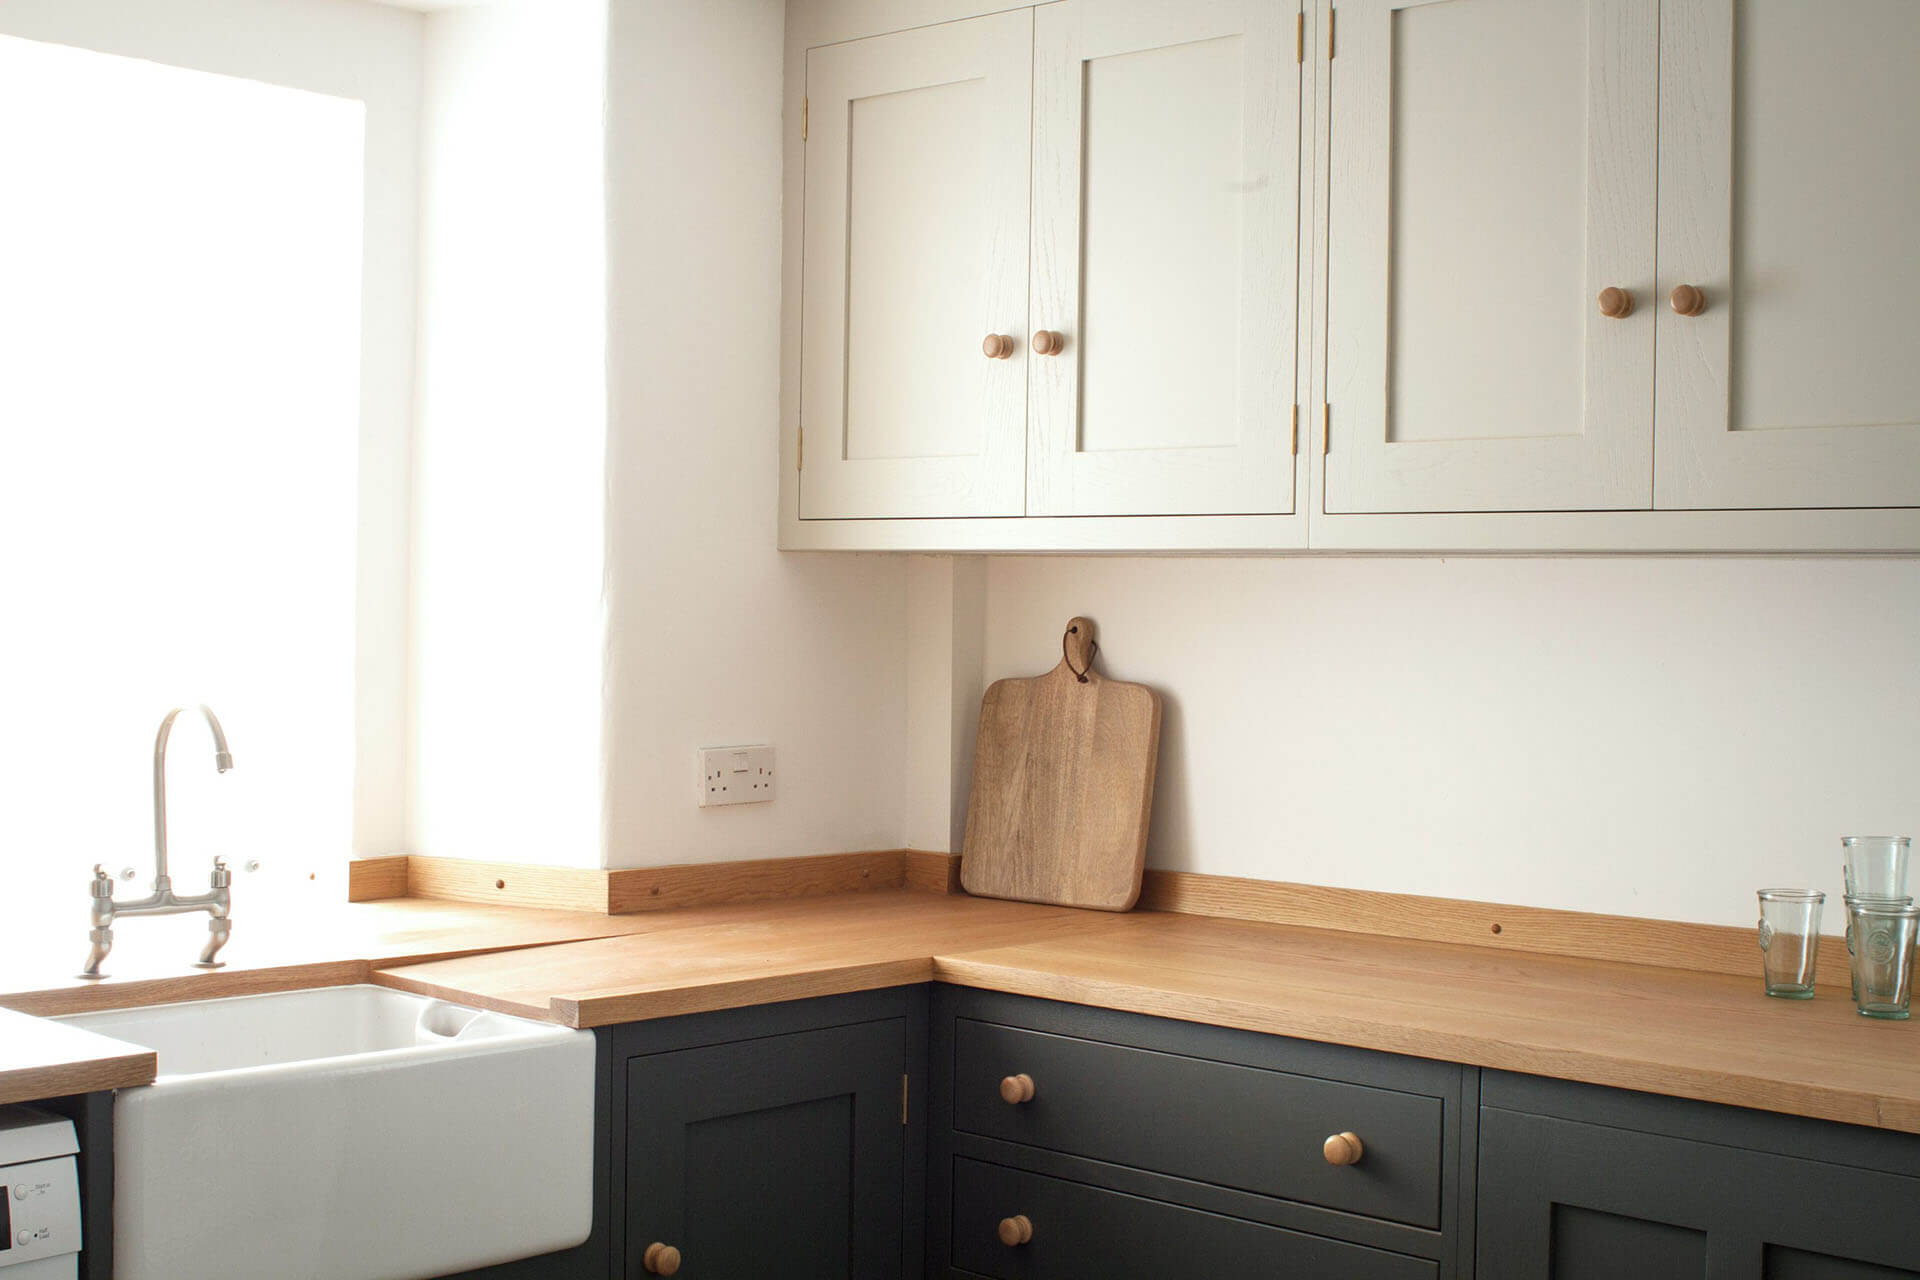 THE COSY STONE COTTAGE KITCHEN IN BATH